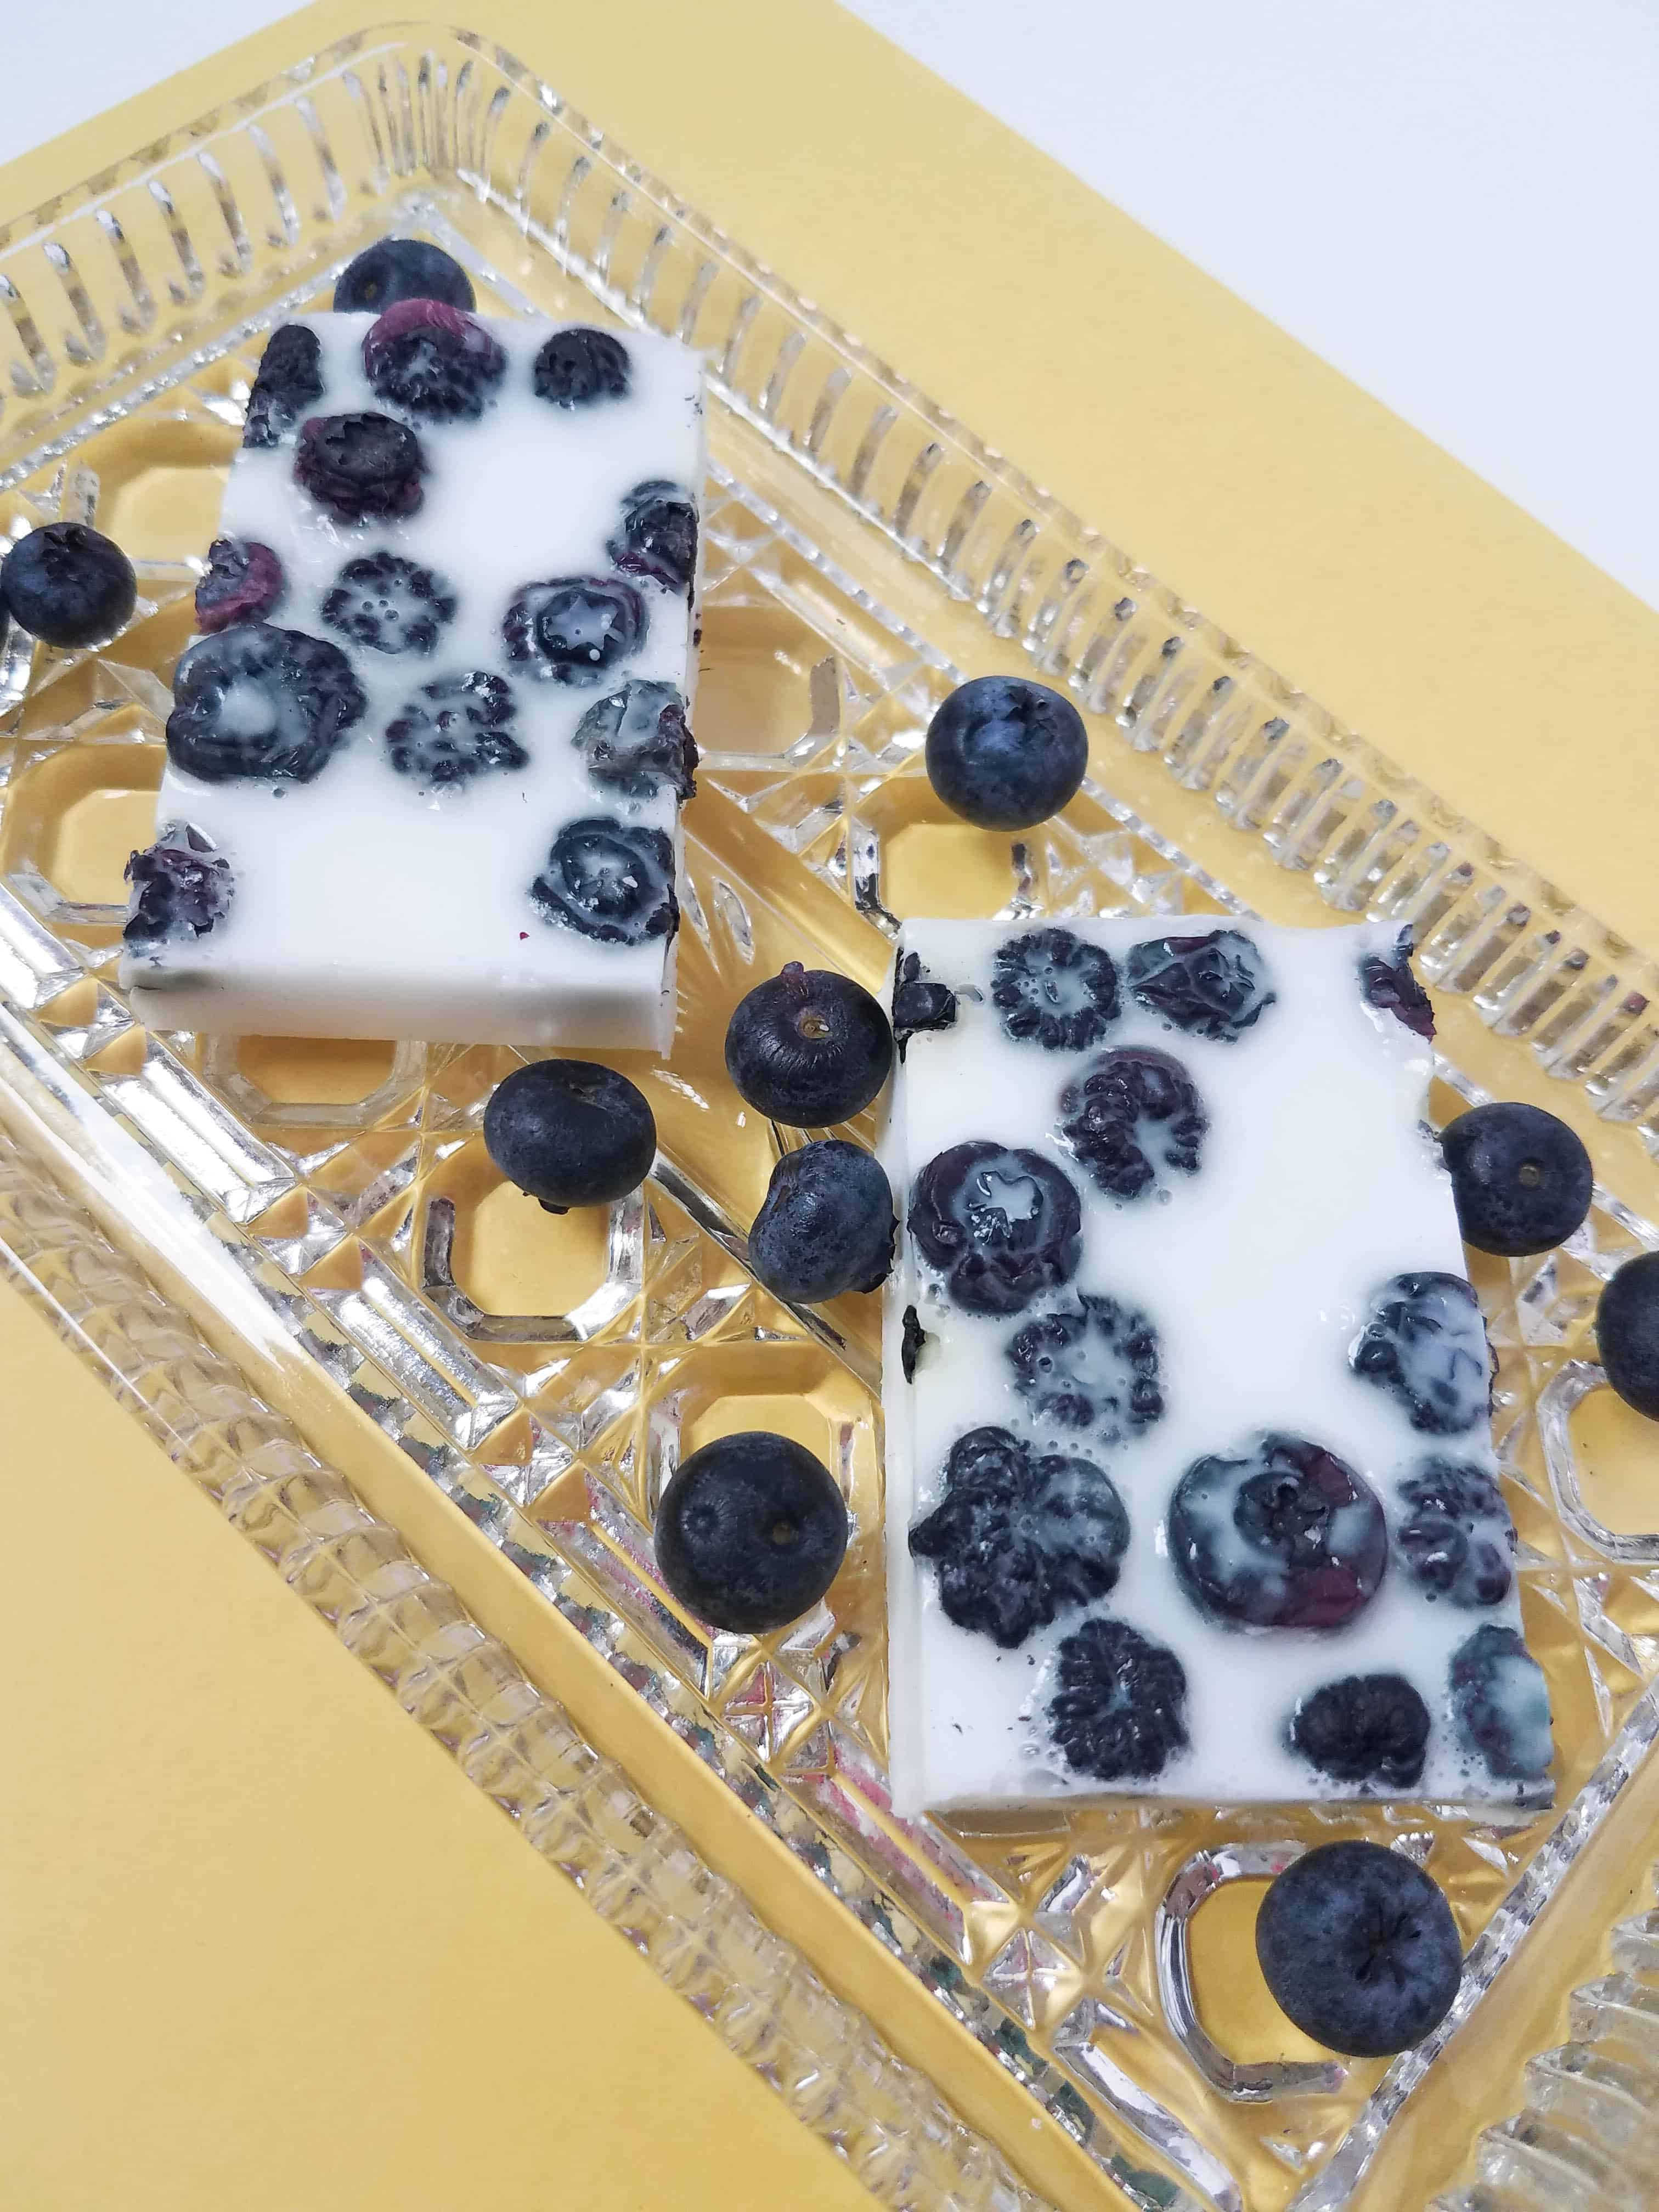 How To Make Blueberry Soap 183 The Inspiration Edit